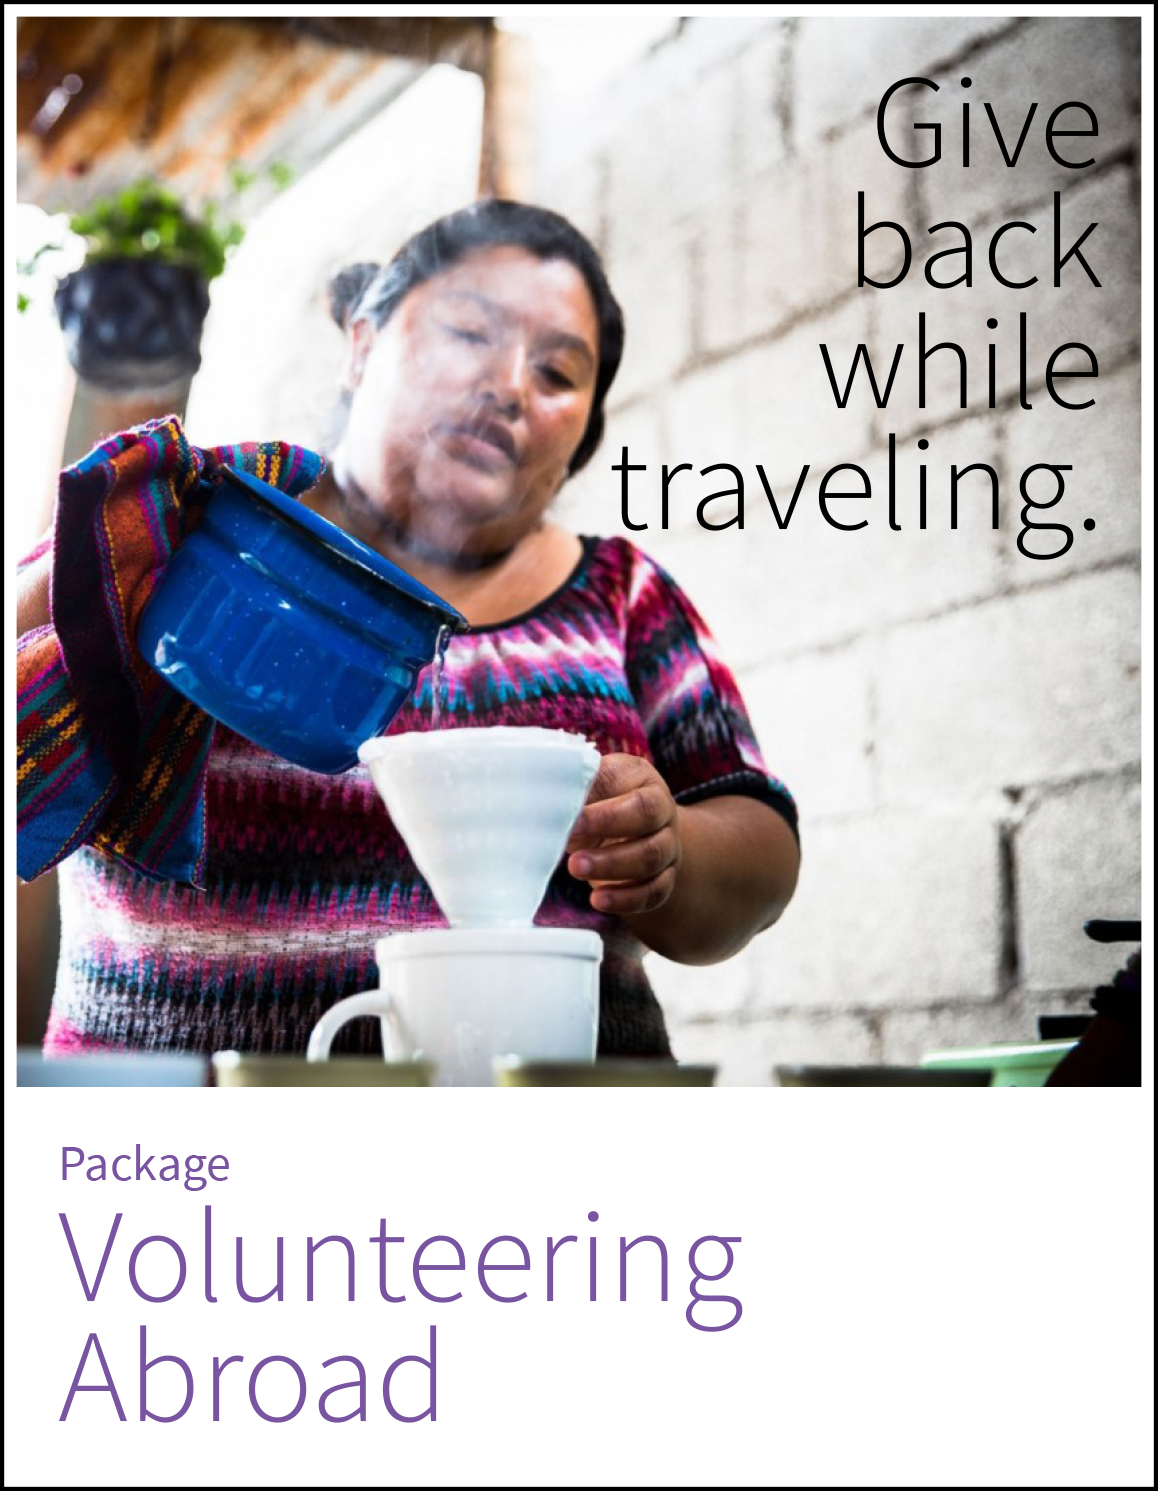 Volunteering Abroad, Antigua's 6-day package.